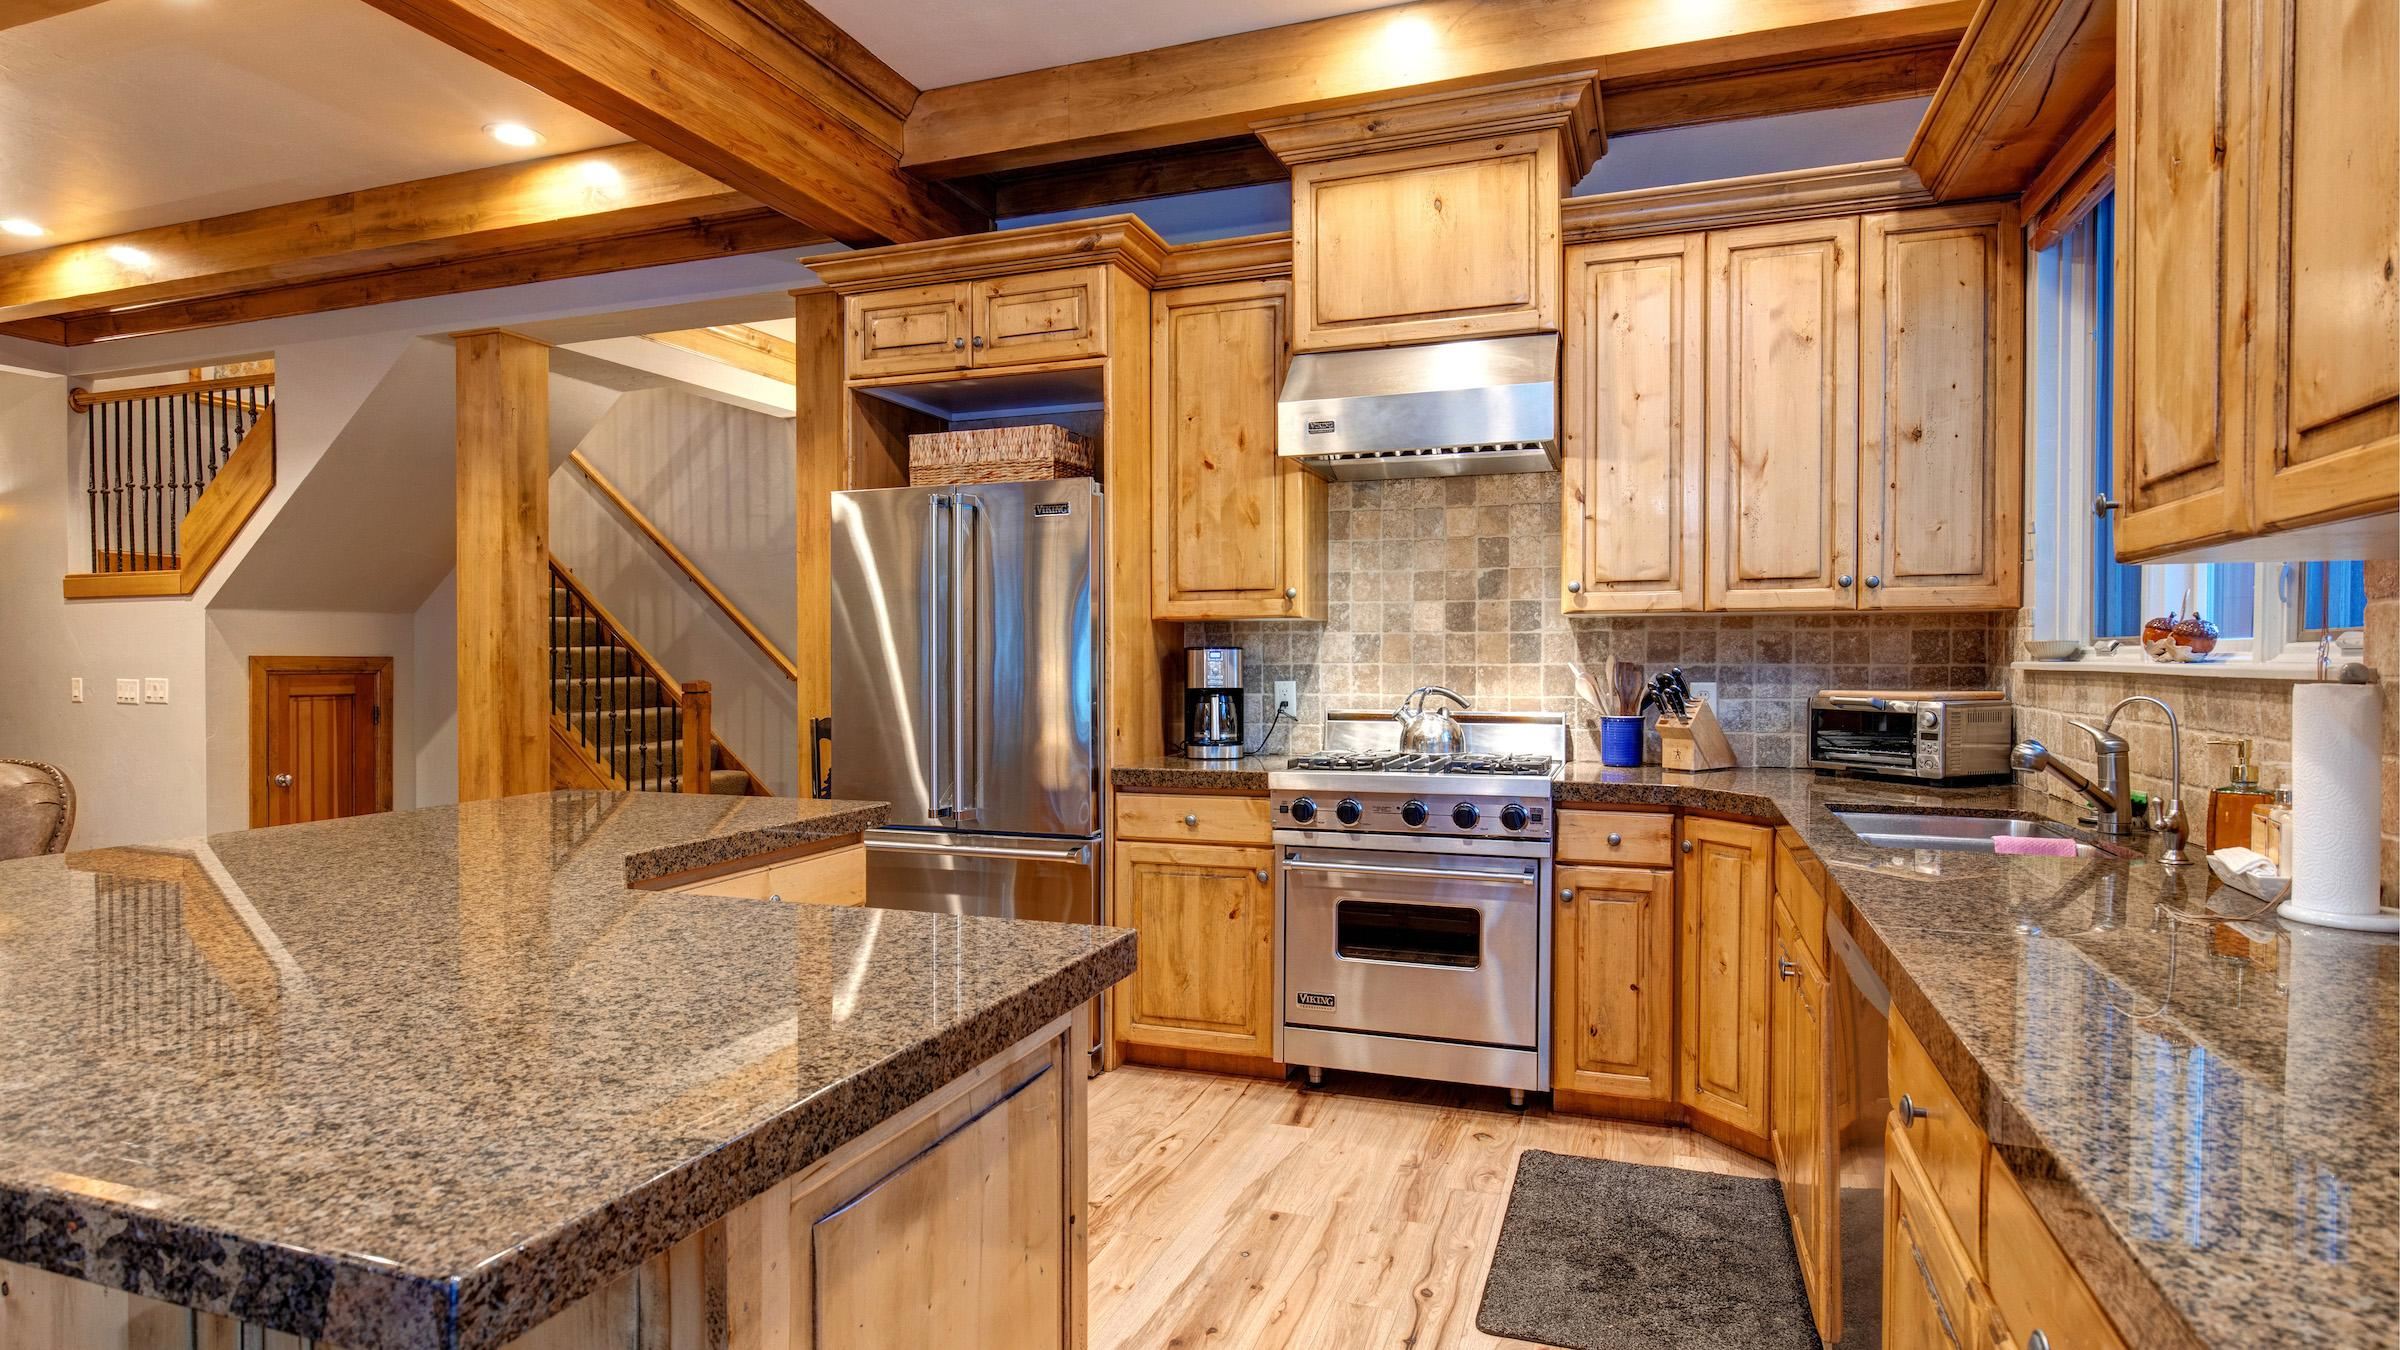 Property Image 2 - Spacious and Quiet Deer Valley Home with Private Hot Tub